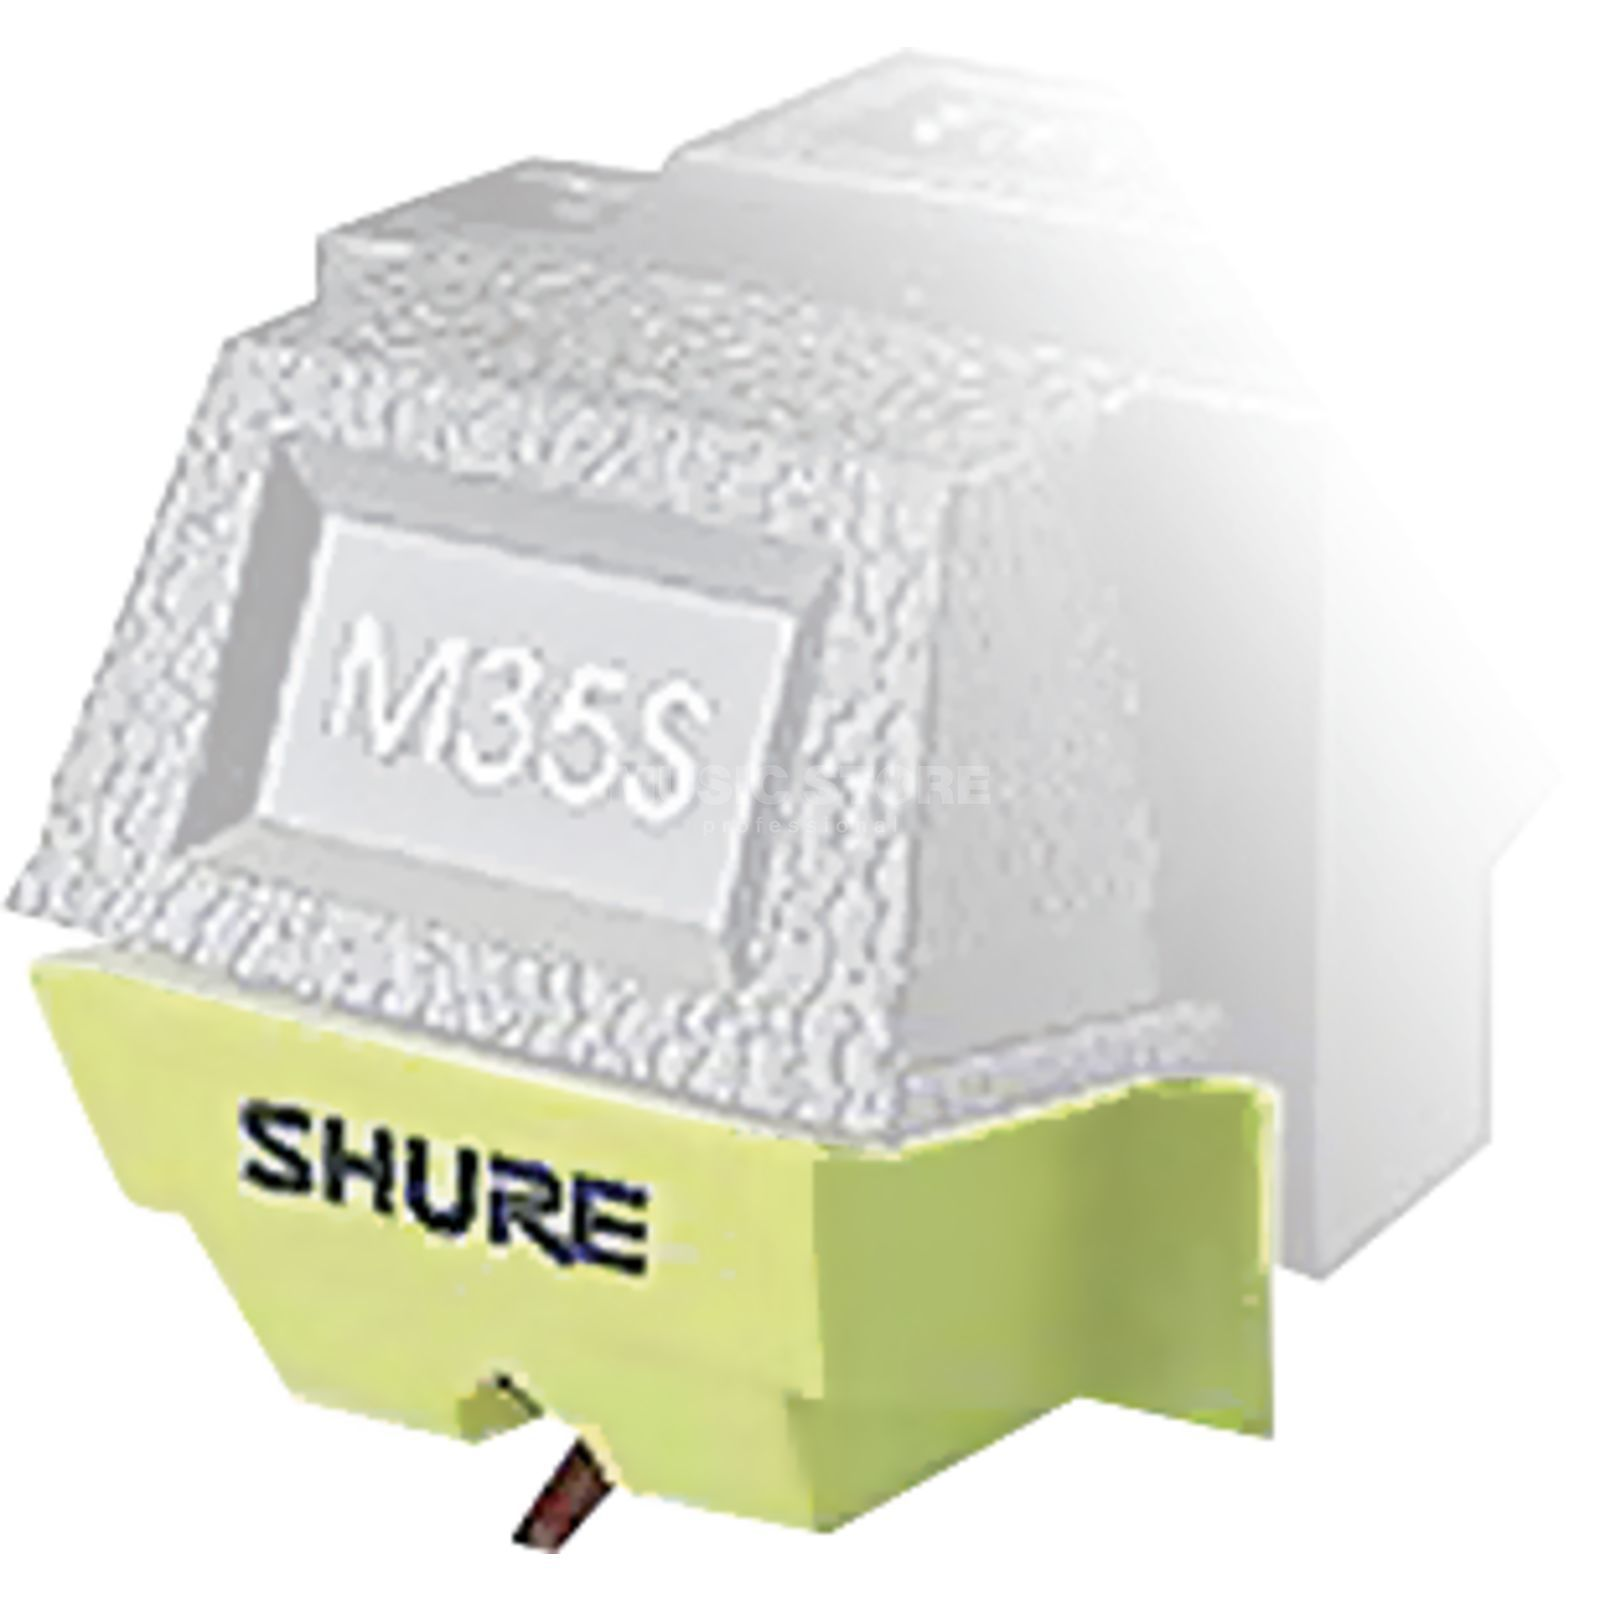 Shure N35S / Replacament Needle for M35S Produktbillede